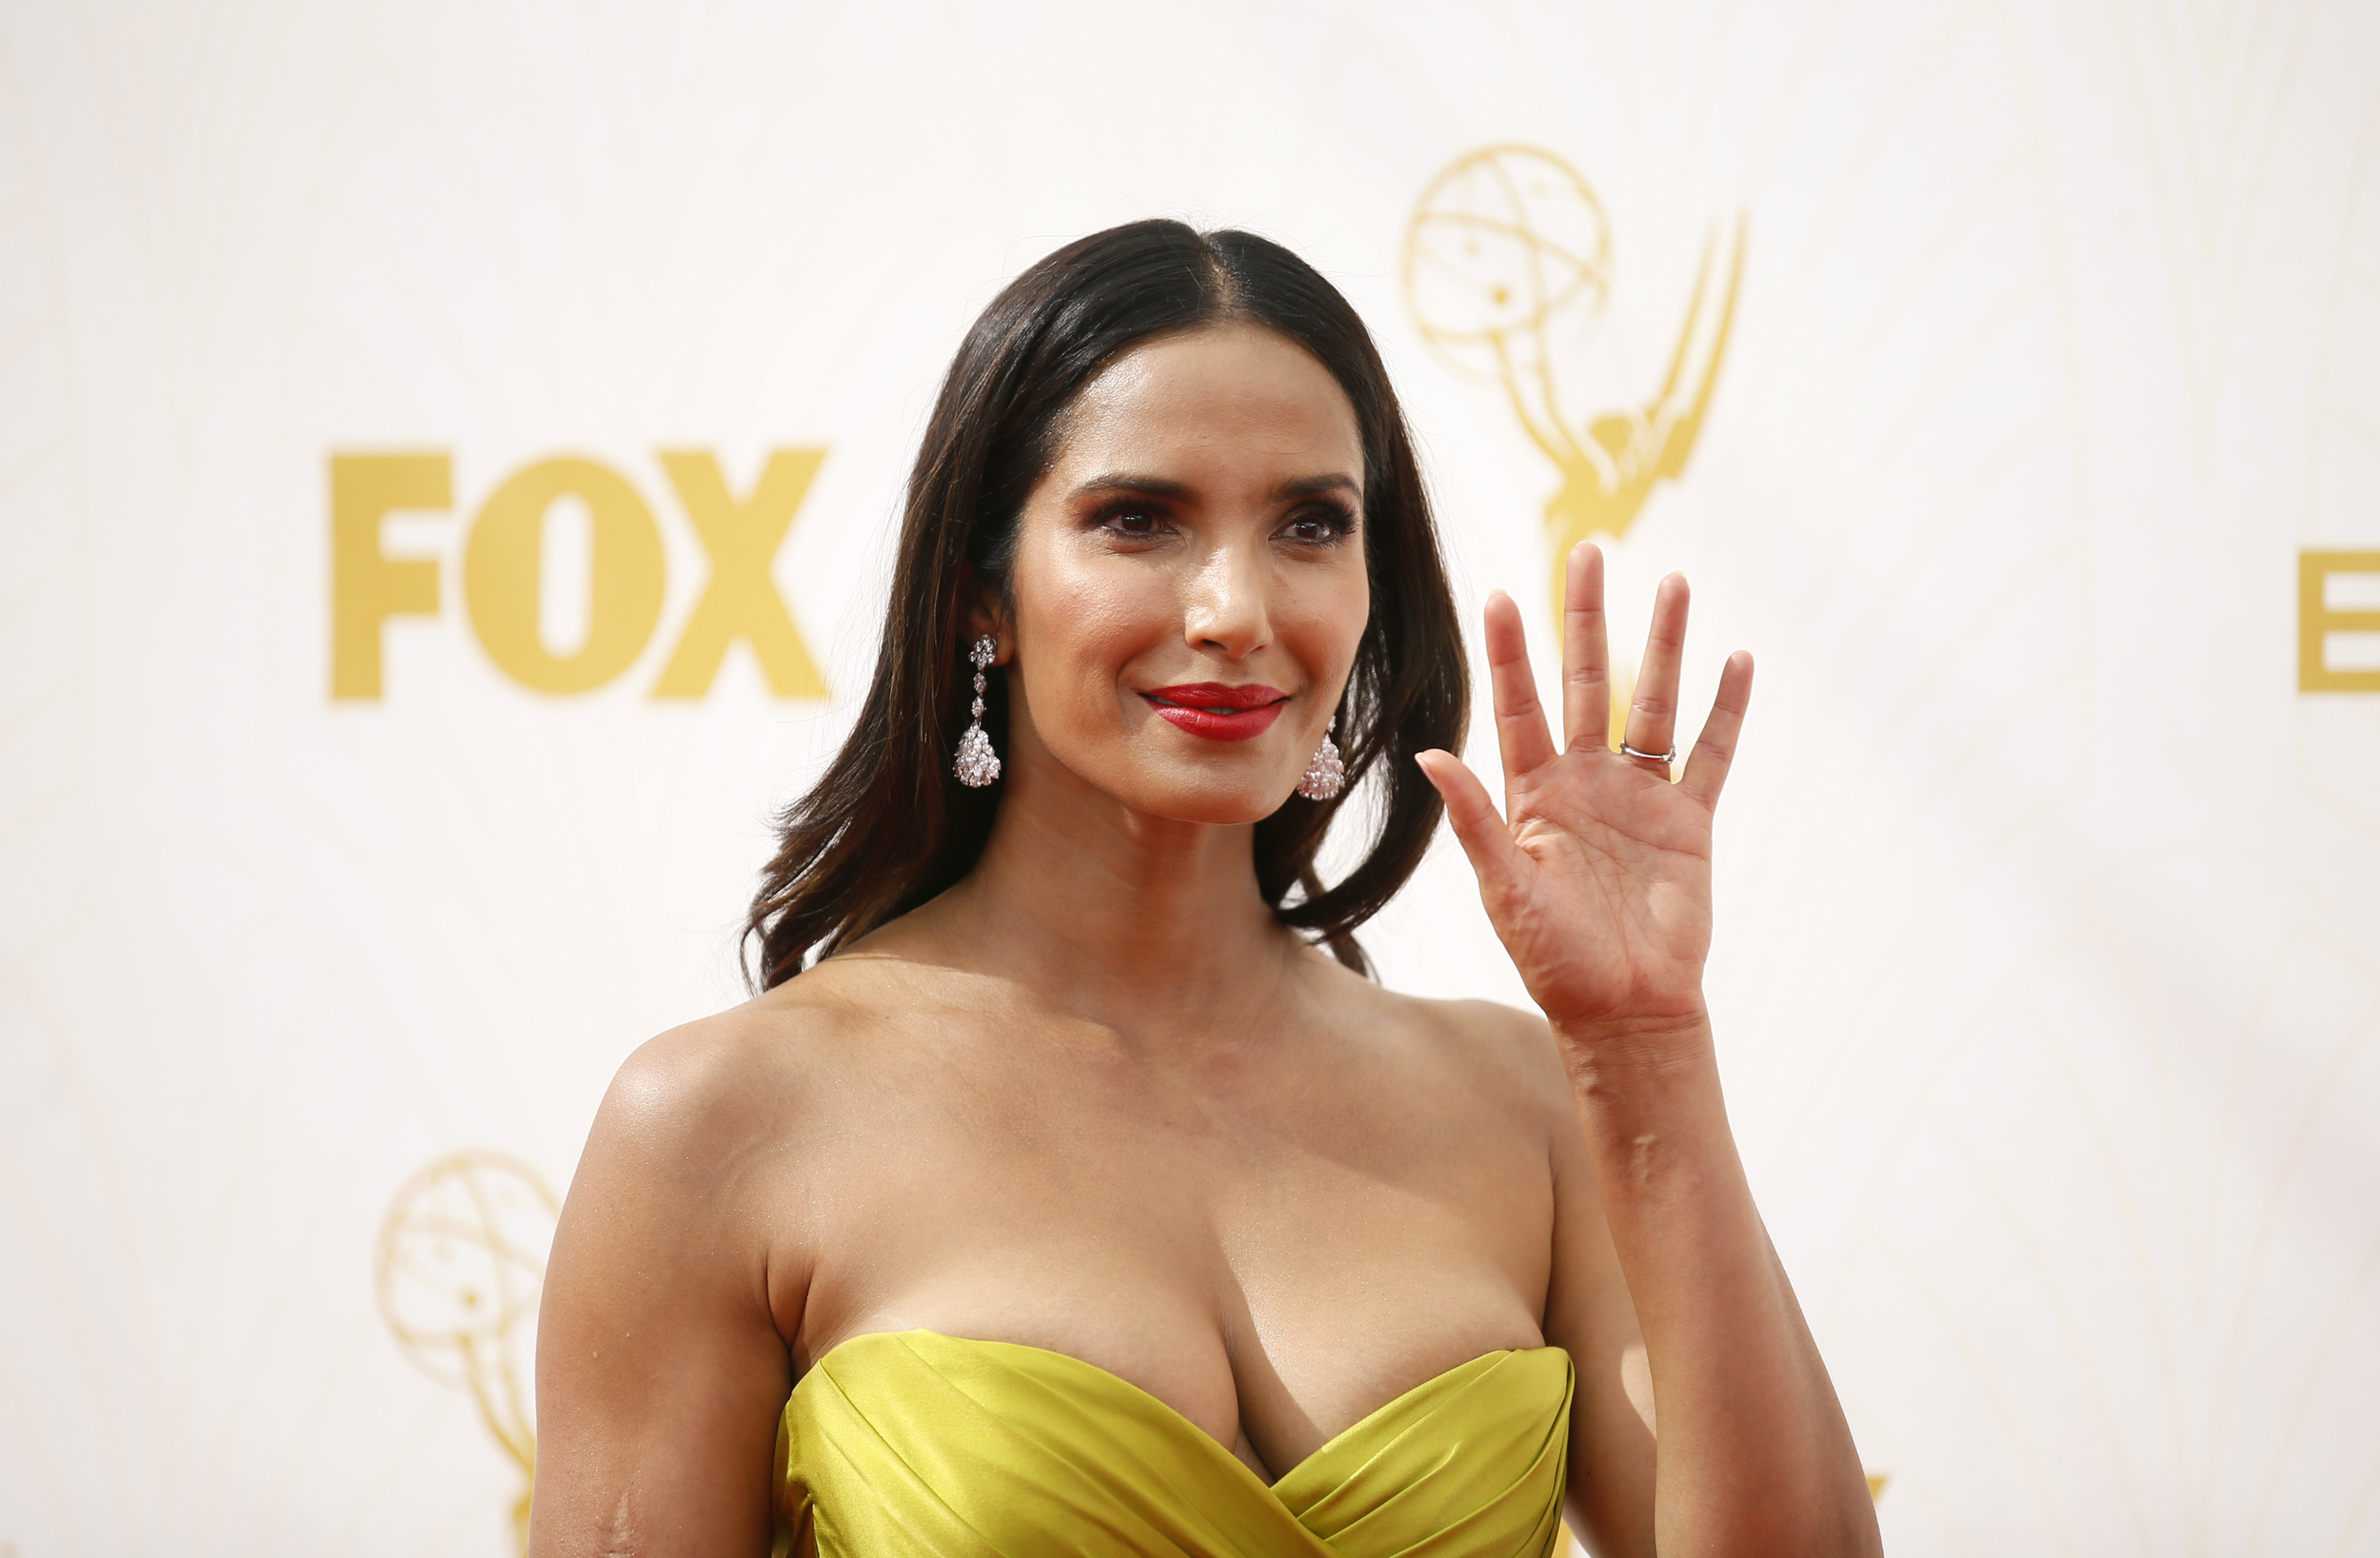 Padma Lakshmi arrives at the 67th Primetime Emmy Awards on Sunday, Sept. 20, 2015, at the Microsoft Theater in Los Angeles. (Danny Moloshok/Invision for the Television Academy/AP)